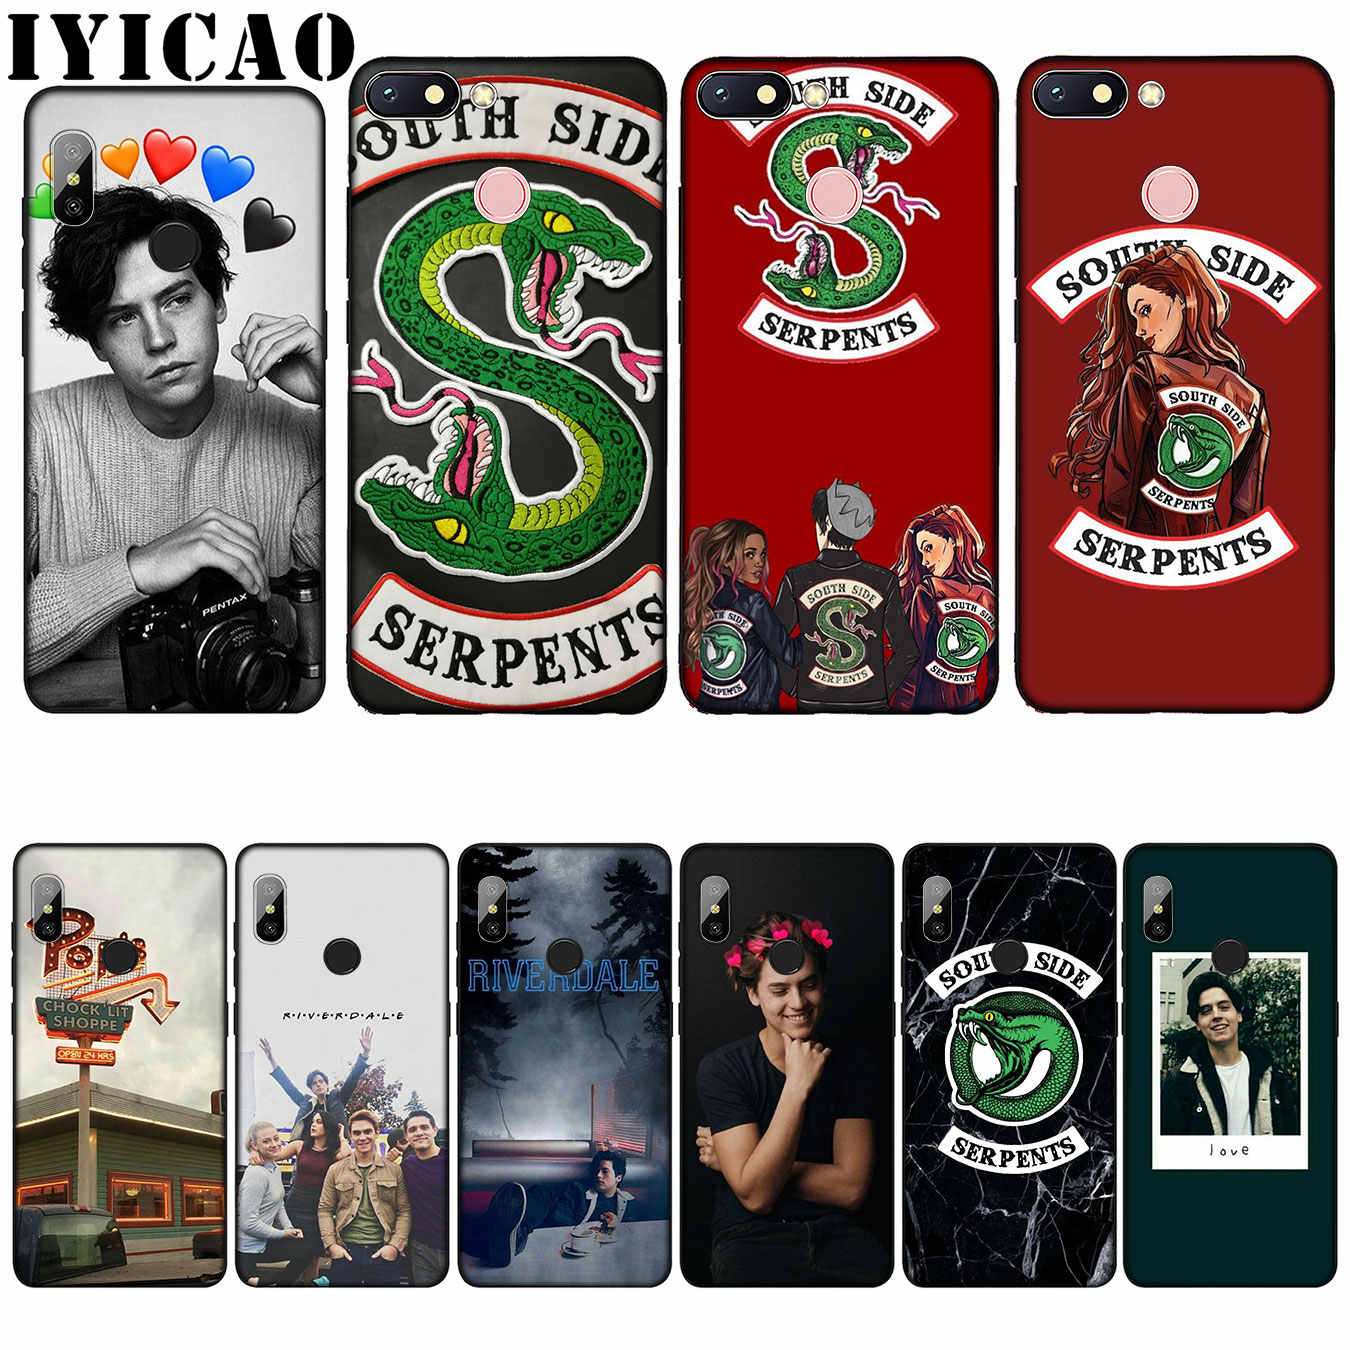 IYICAO Riverdale South Side Snake Cover love Silicone Soft Case for Xiaomi Redmi 6A 5A Note 7 4 4X 5 Plus 6 Pro Black TPU Cover